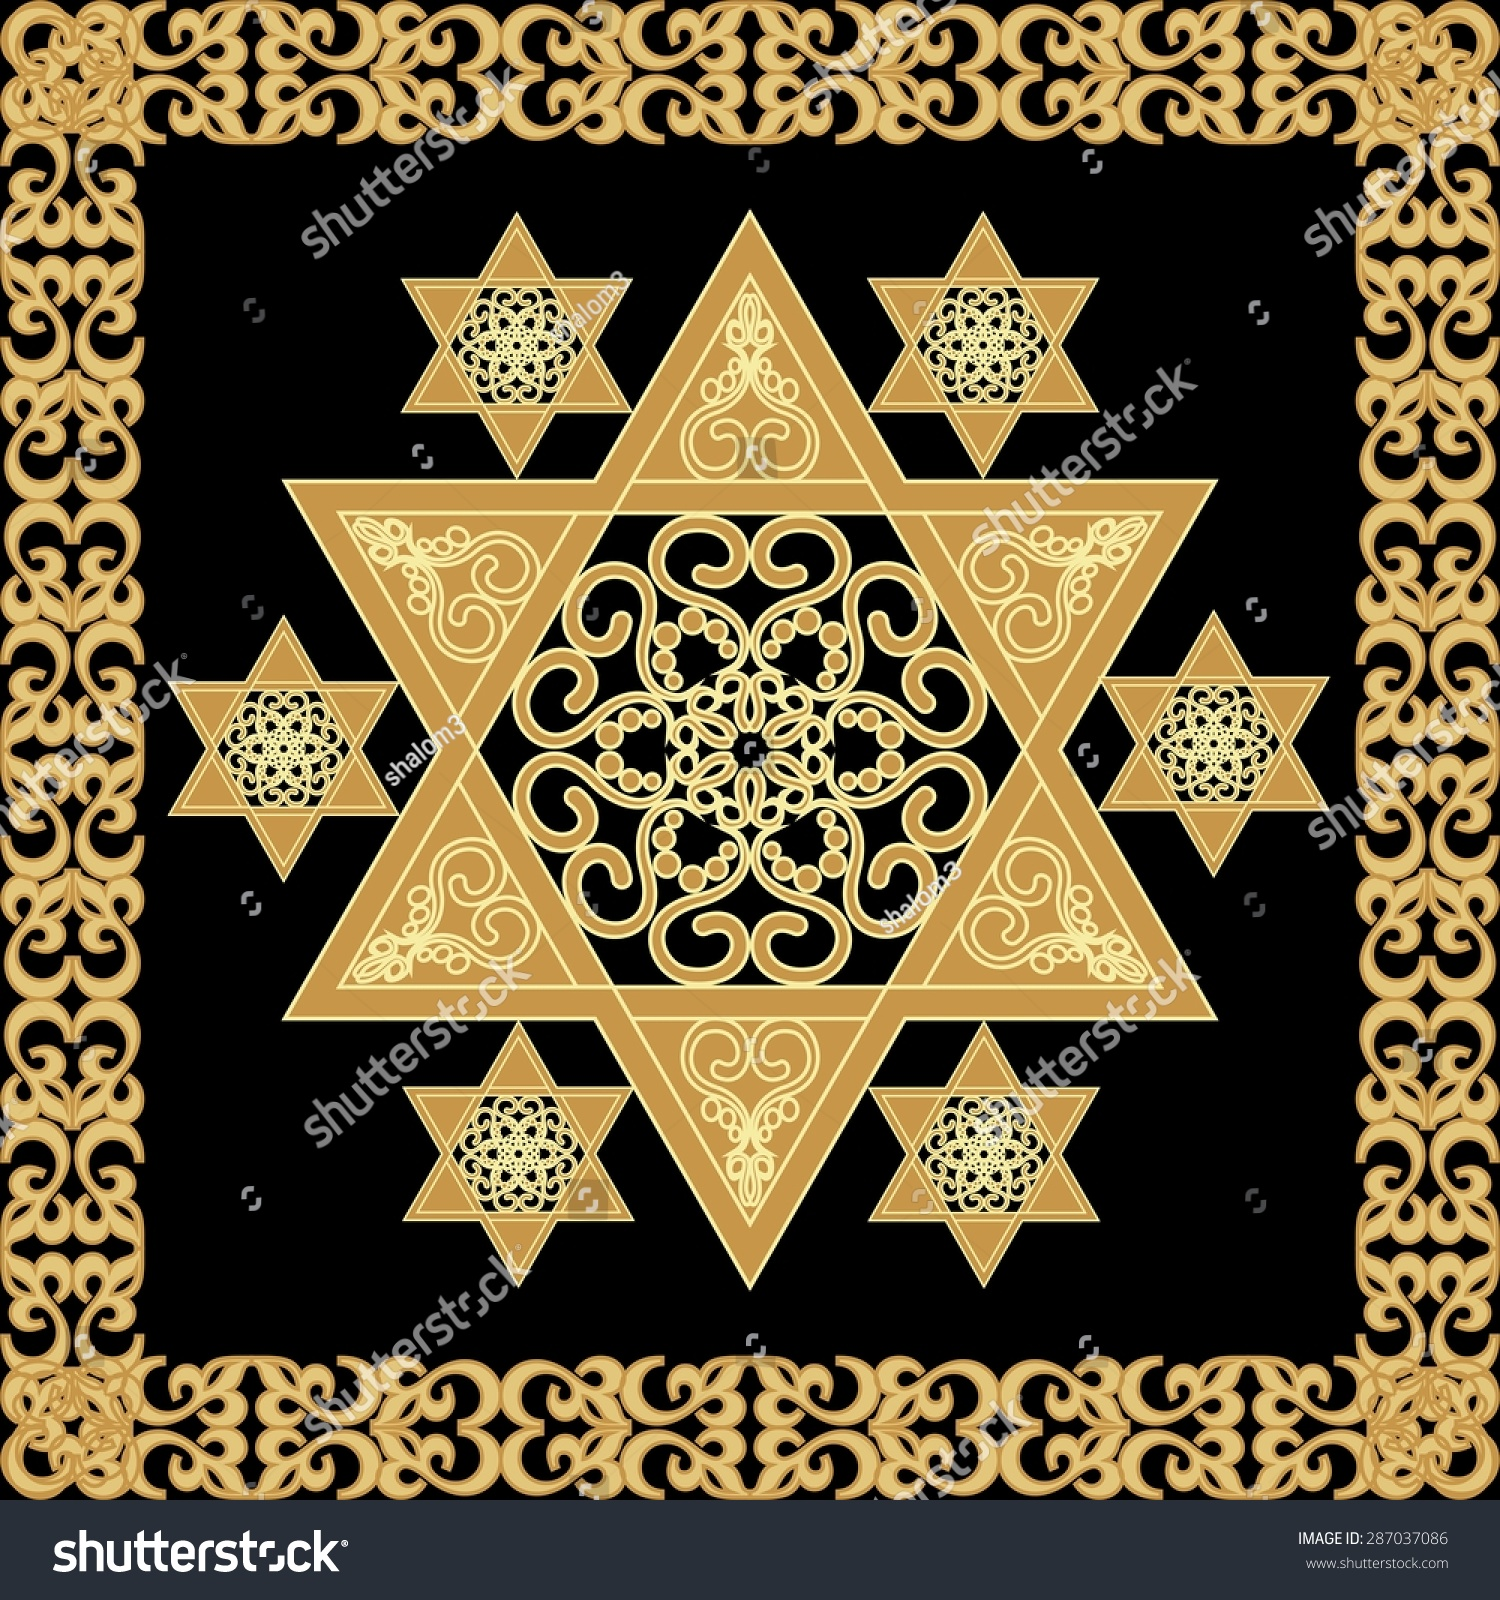 Star david decoration tile geometric vintage stock vector star of david decoration tile with geometric vintage yew ornament in gold design israel national biocorpaavc Choice Image